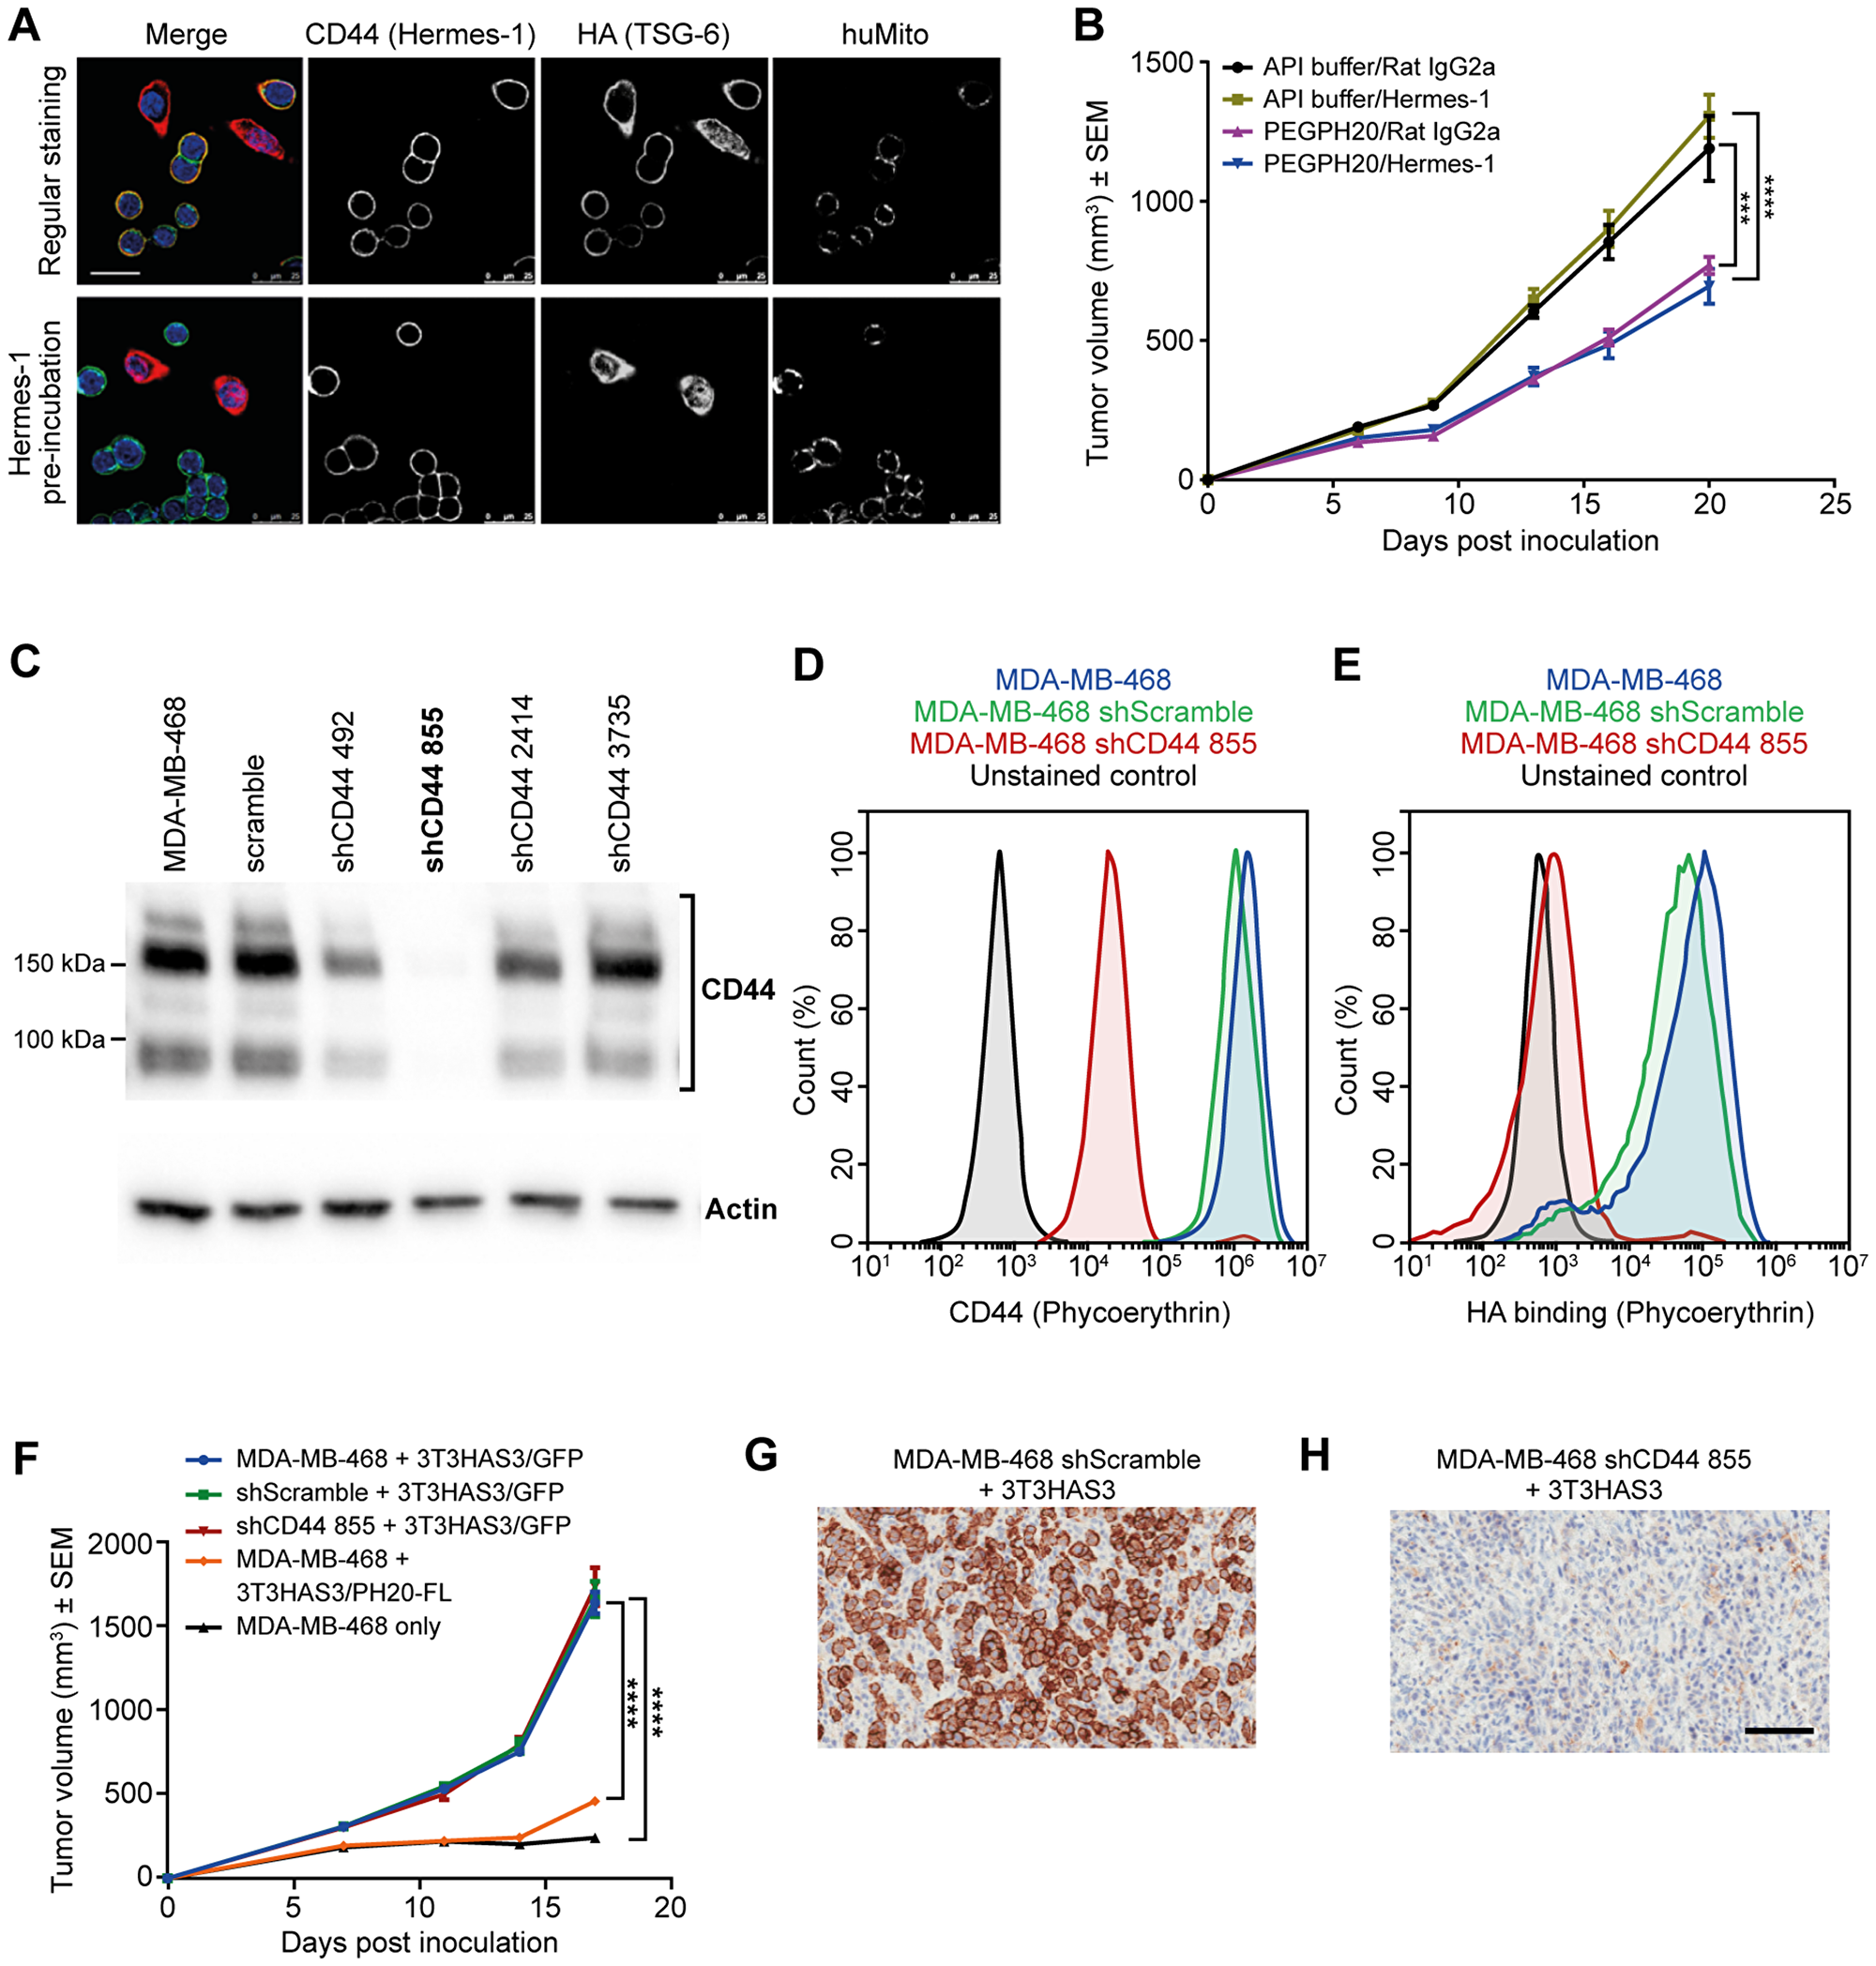 Tumor growth in the breast cancer co-graft model with HA-accumulating stroma was independent of CD44 expression in MDA-MB-468 tumor cells.